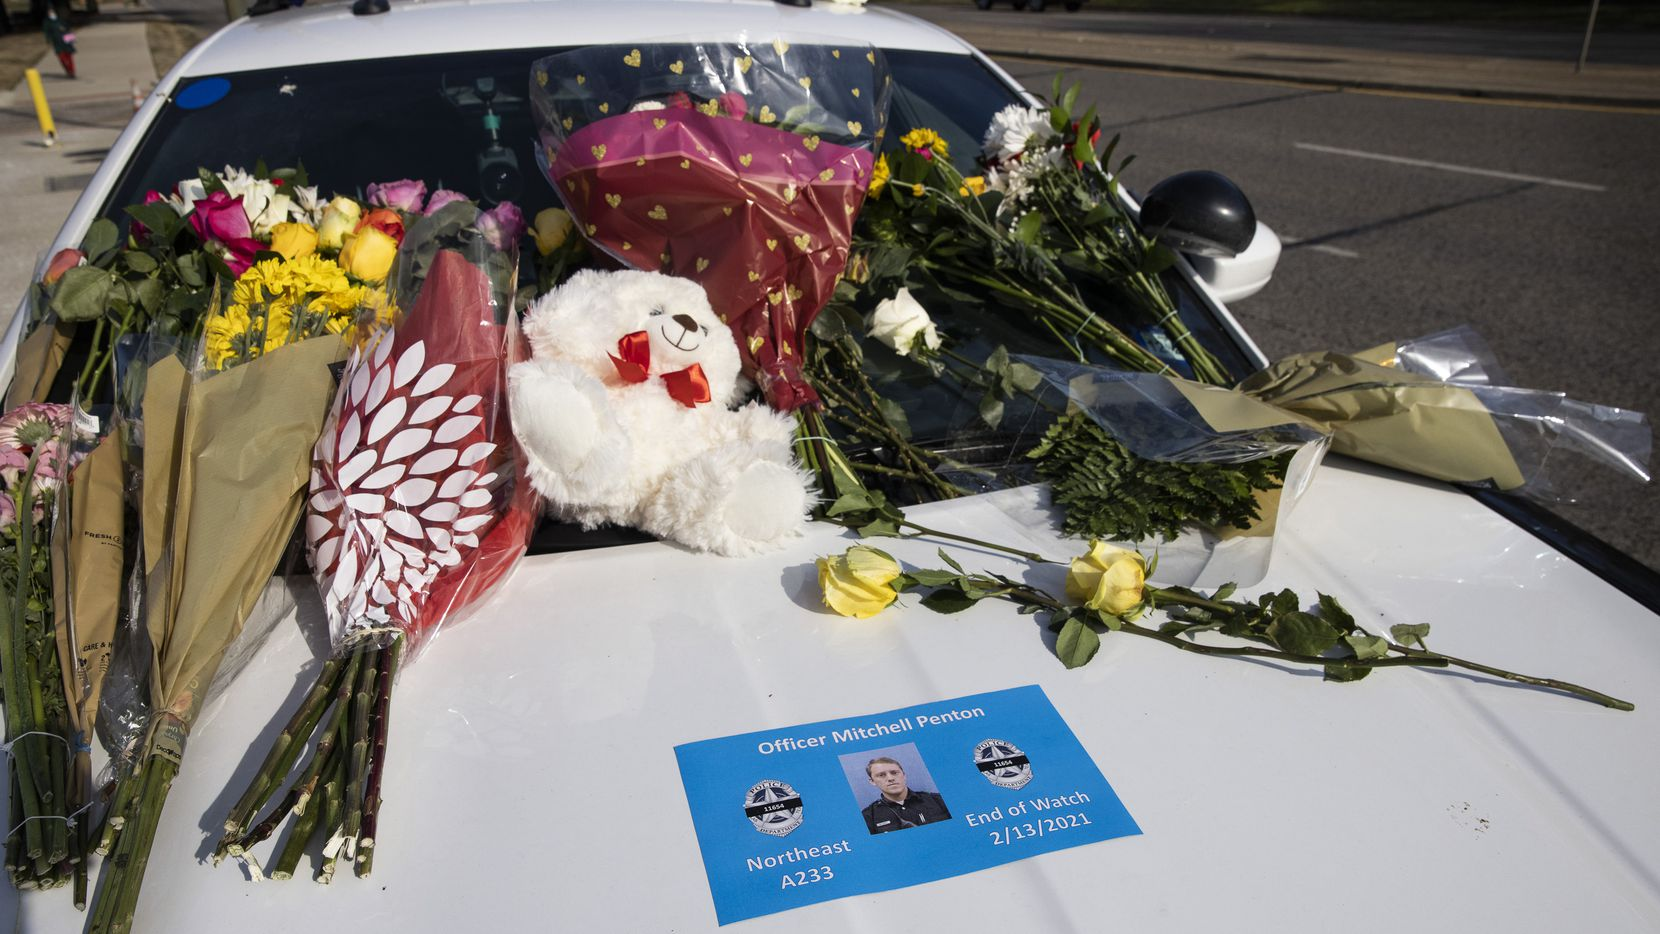 Flowers covered the windshield of a Dallas police car as people paid their respects to fallen Officer Mitchell Penton at the Northeast Patrol Division building on Saturday.